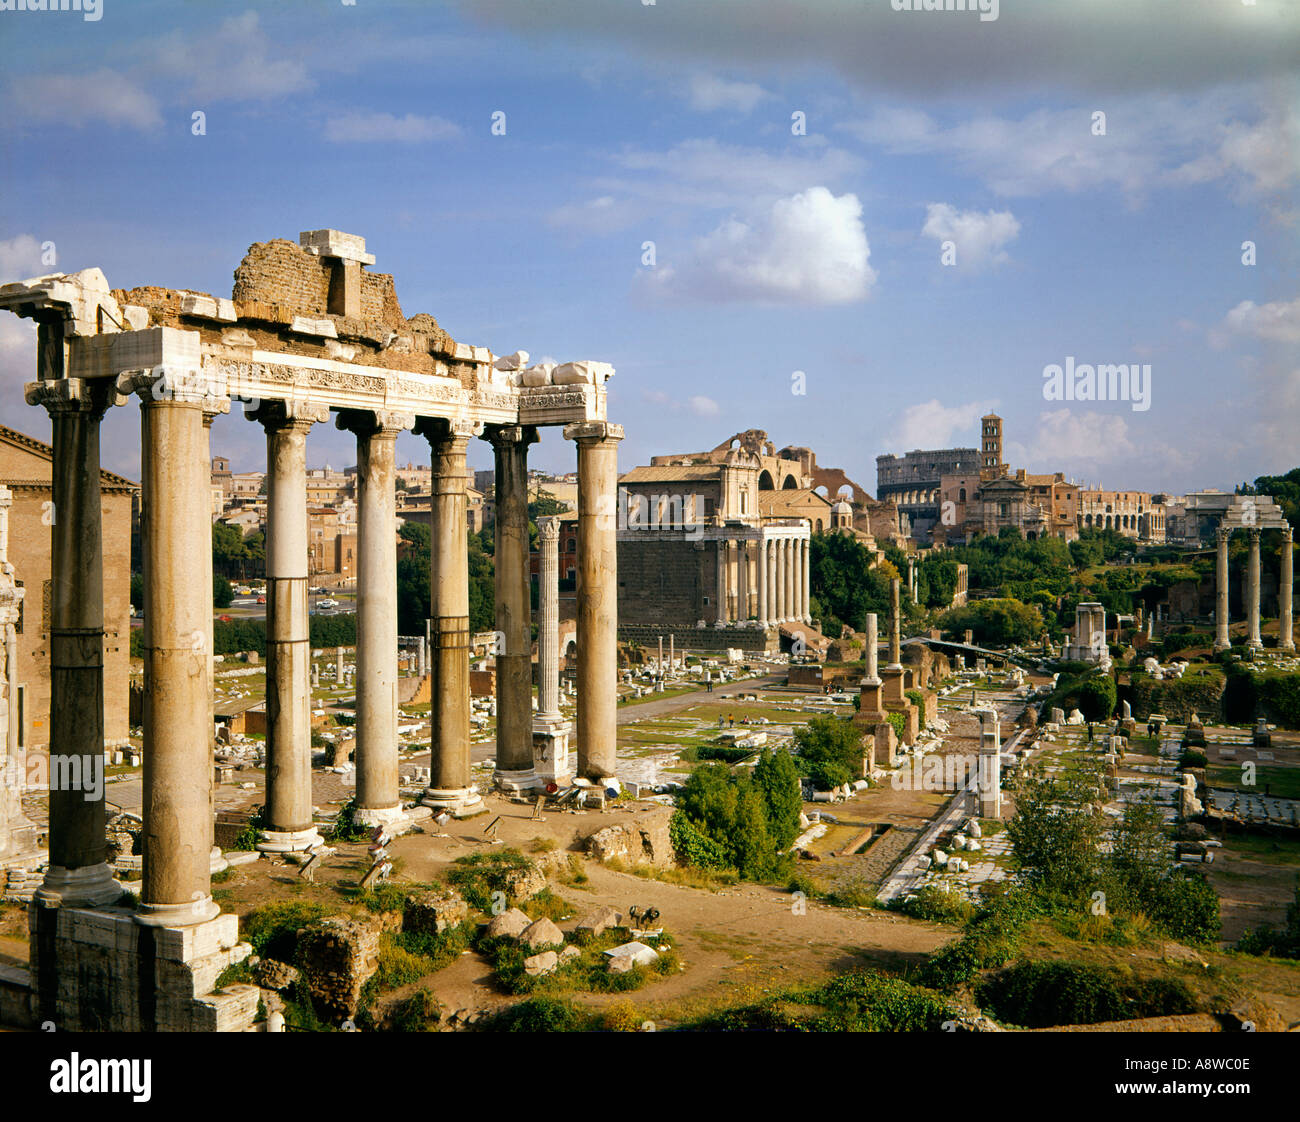 ancient ruins of the Forum in Rome Italy - Stock Image